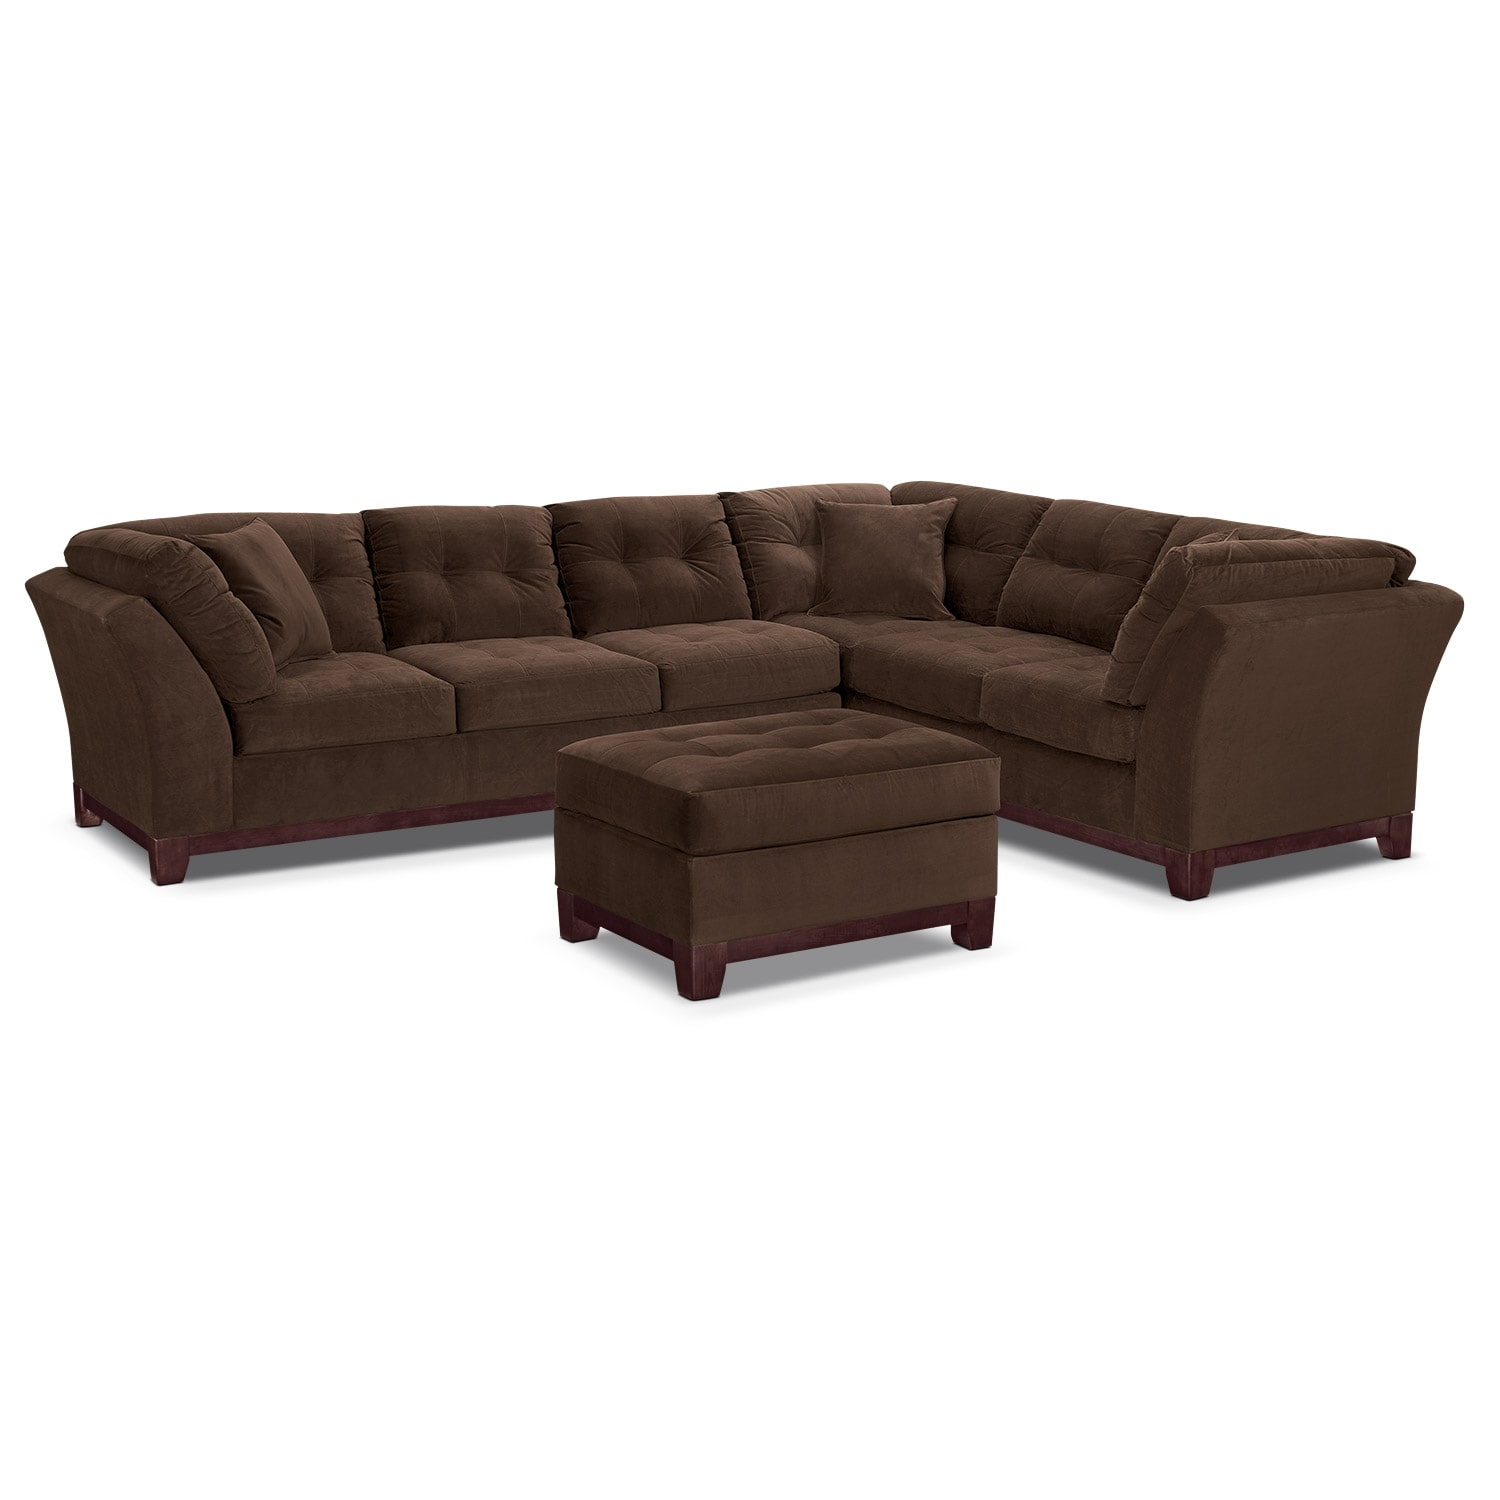 Living Room Furniture - Solace Chocolate II 3 Pc. Sectional (Reverse) and Ottoman